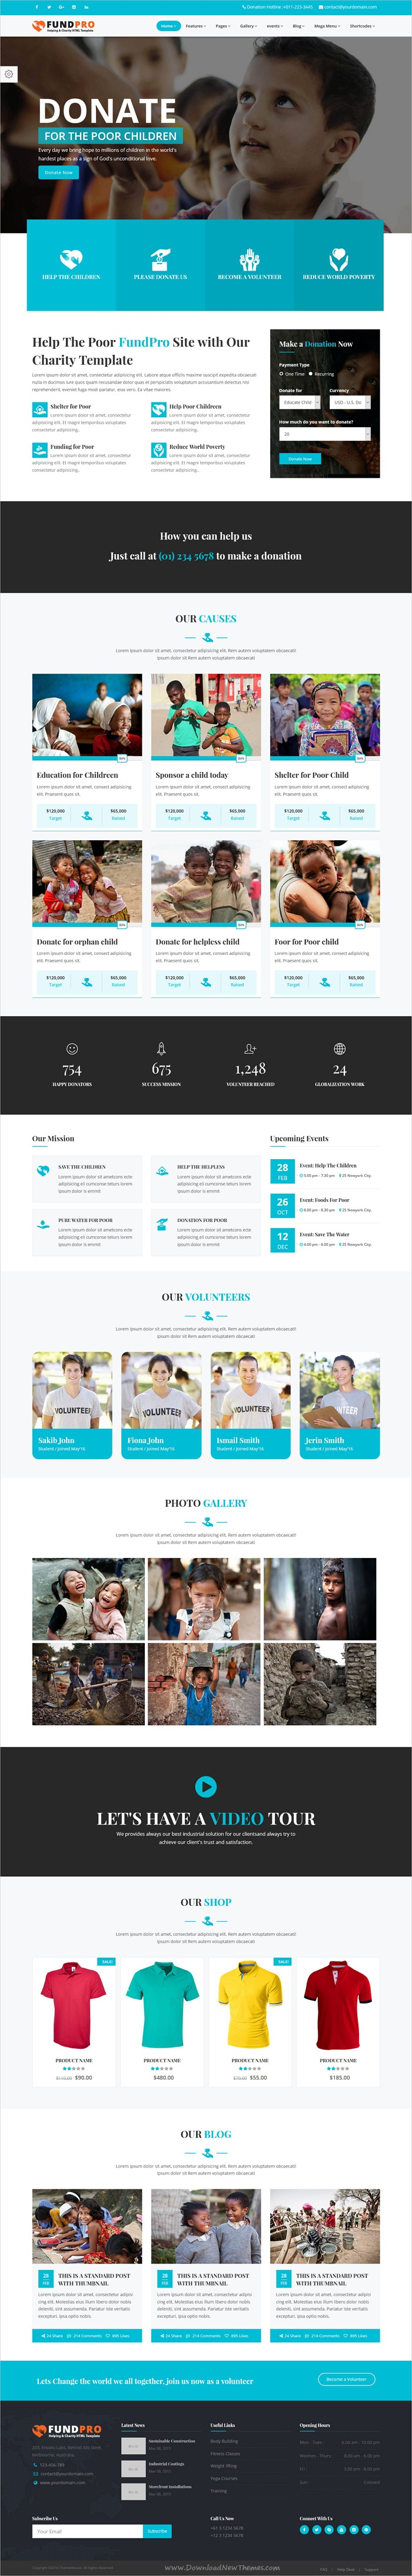 Fundpro Charity Nonprofit Website Design Layout Html5 Templates Homepage Layout